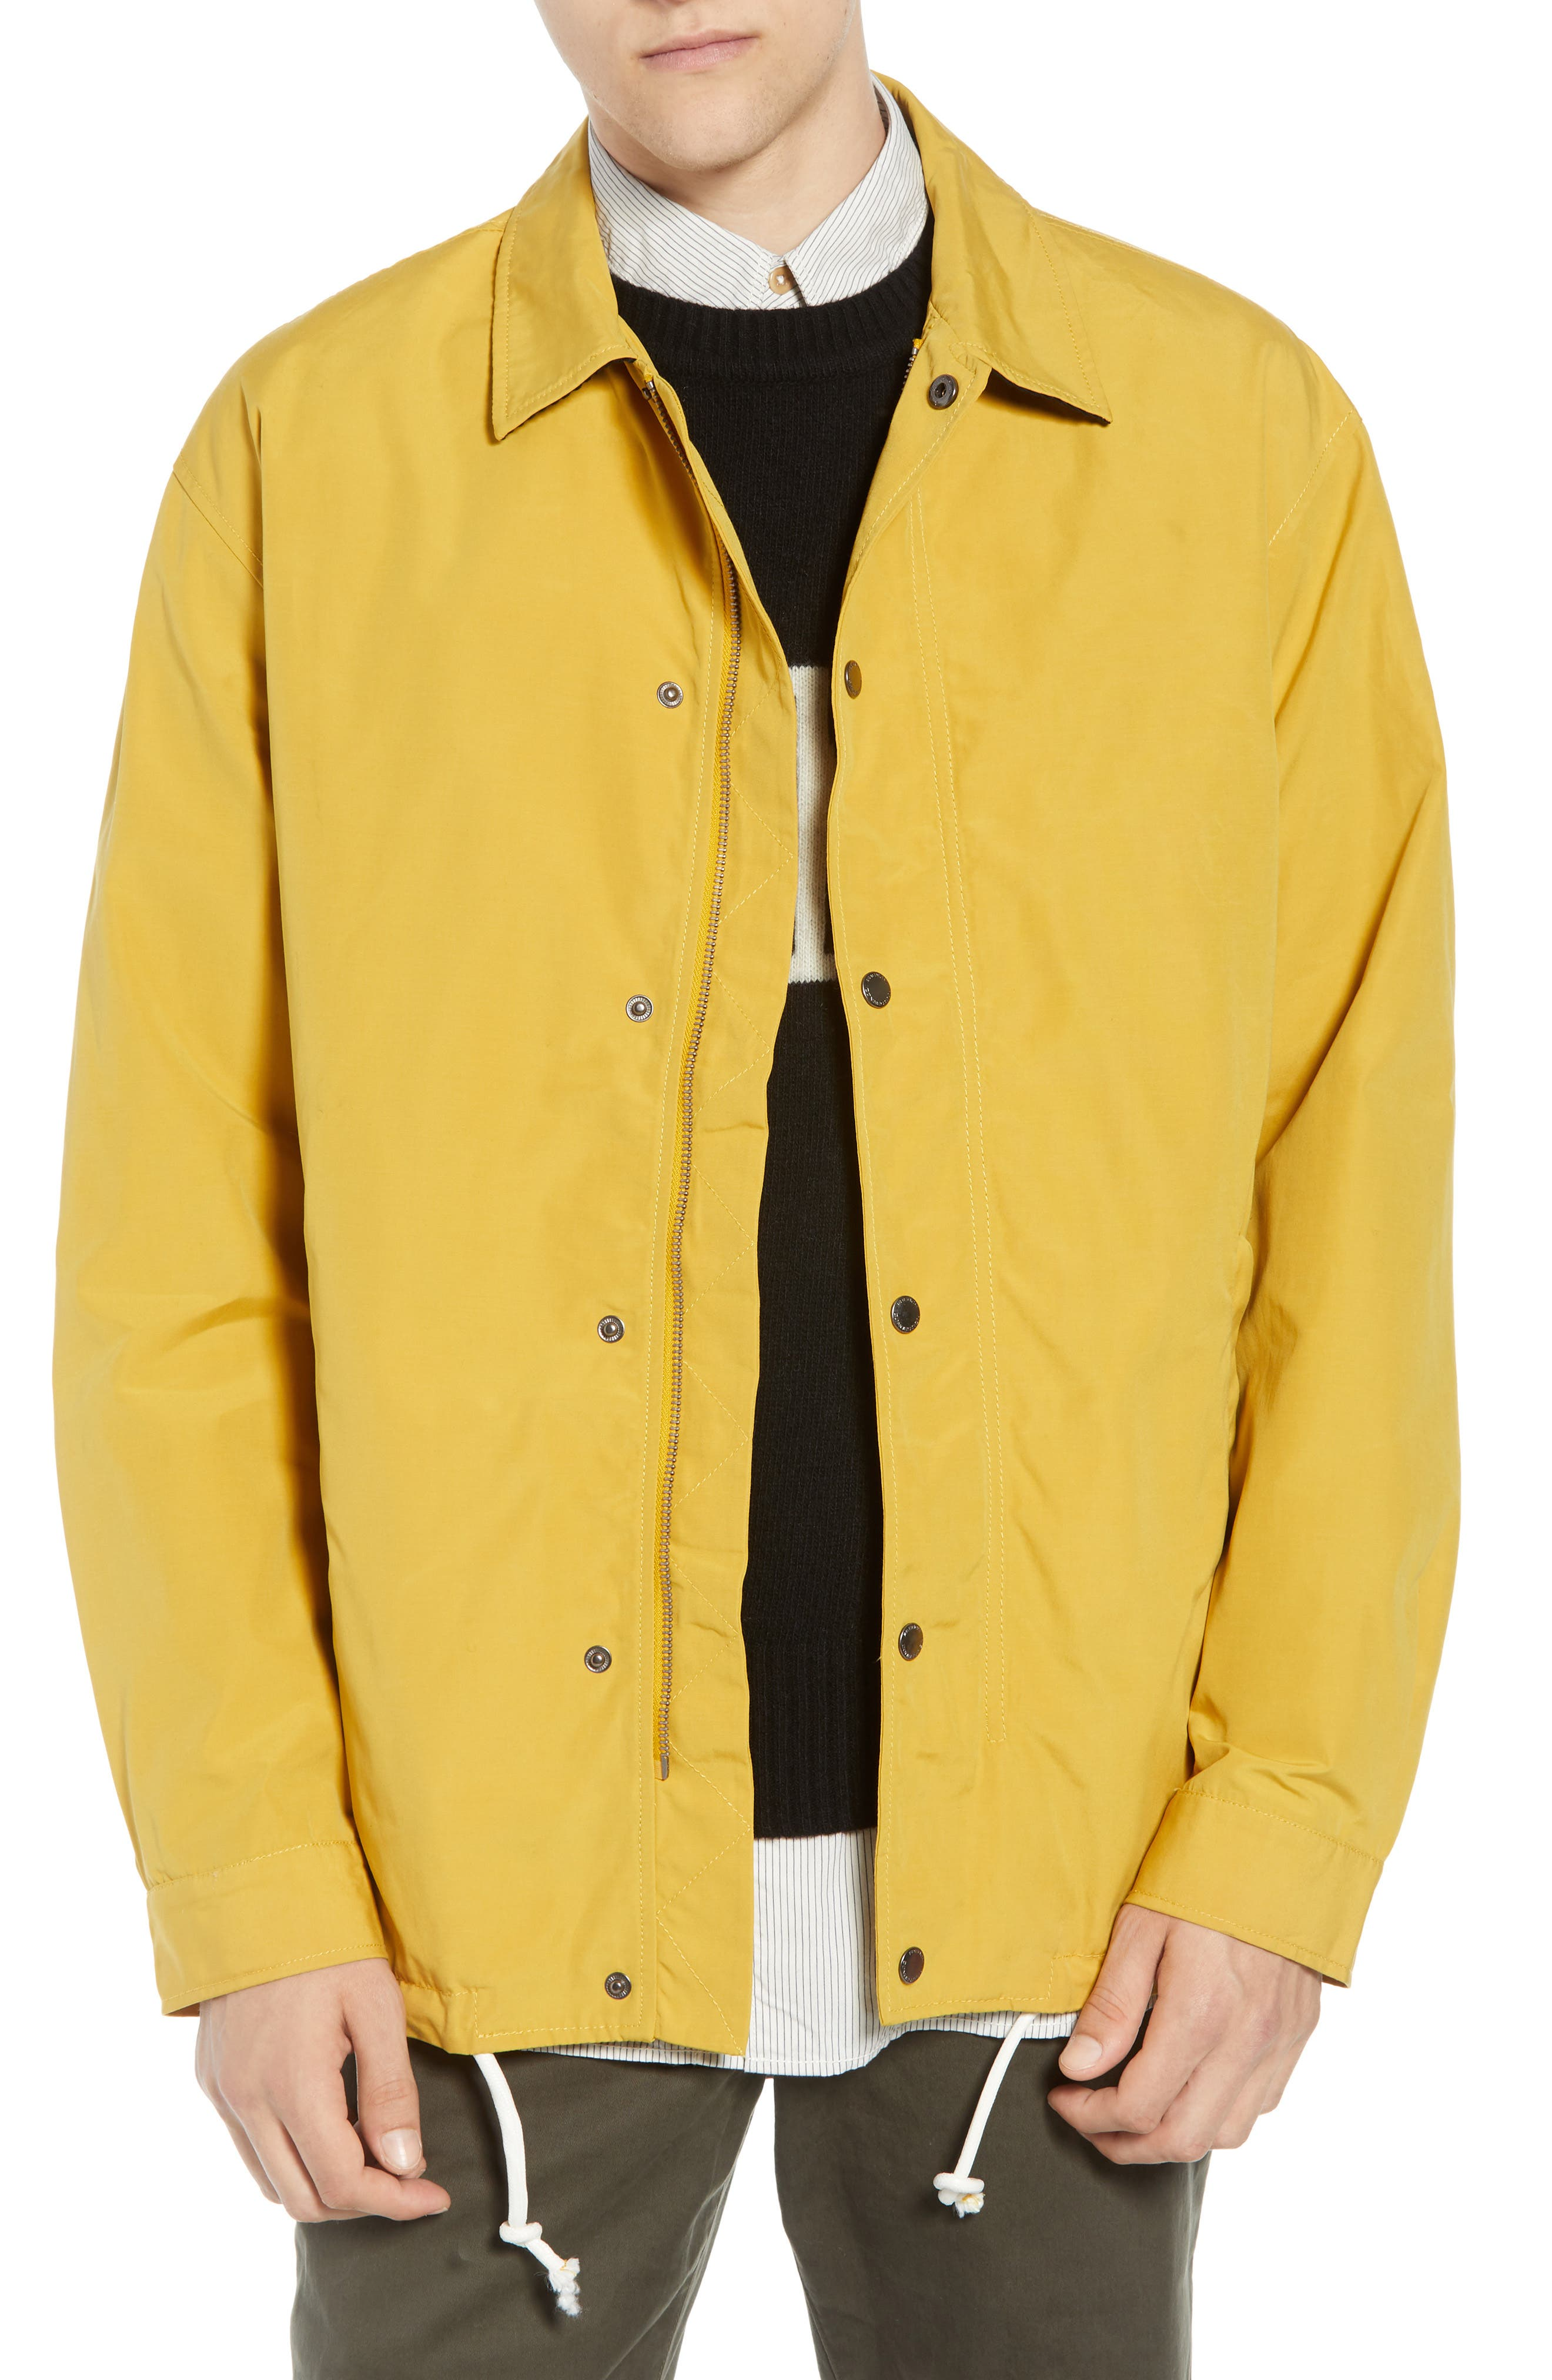 FRENCH CONNECTION Waxed Coach's Jacket, Main, color, 700